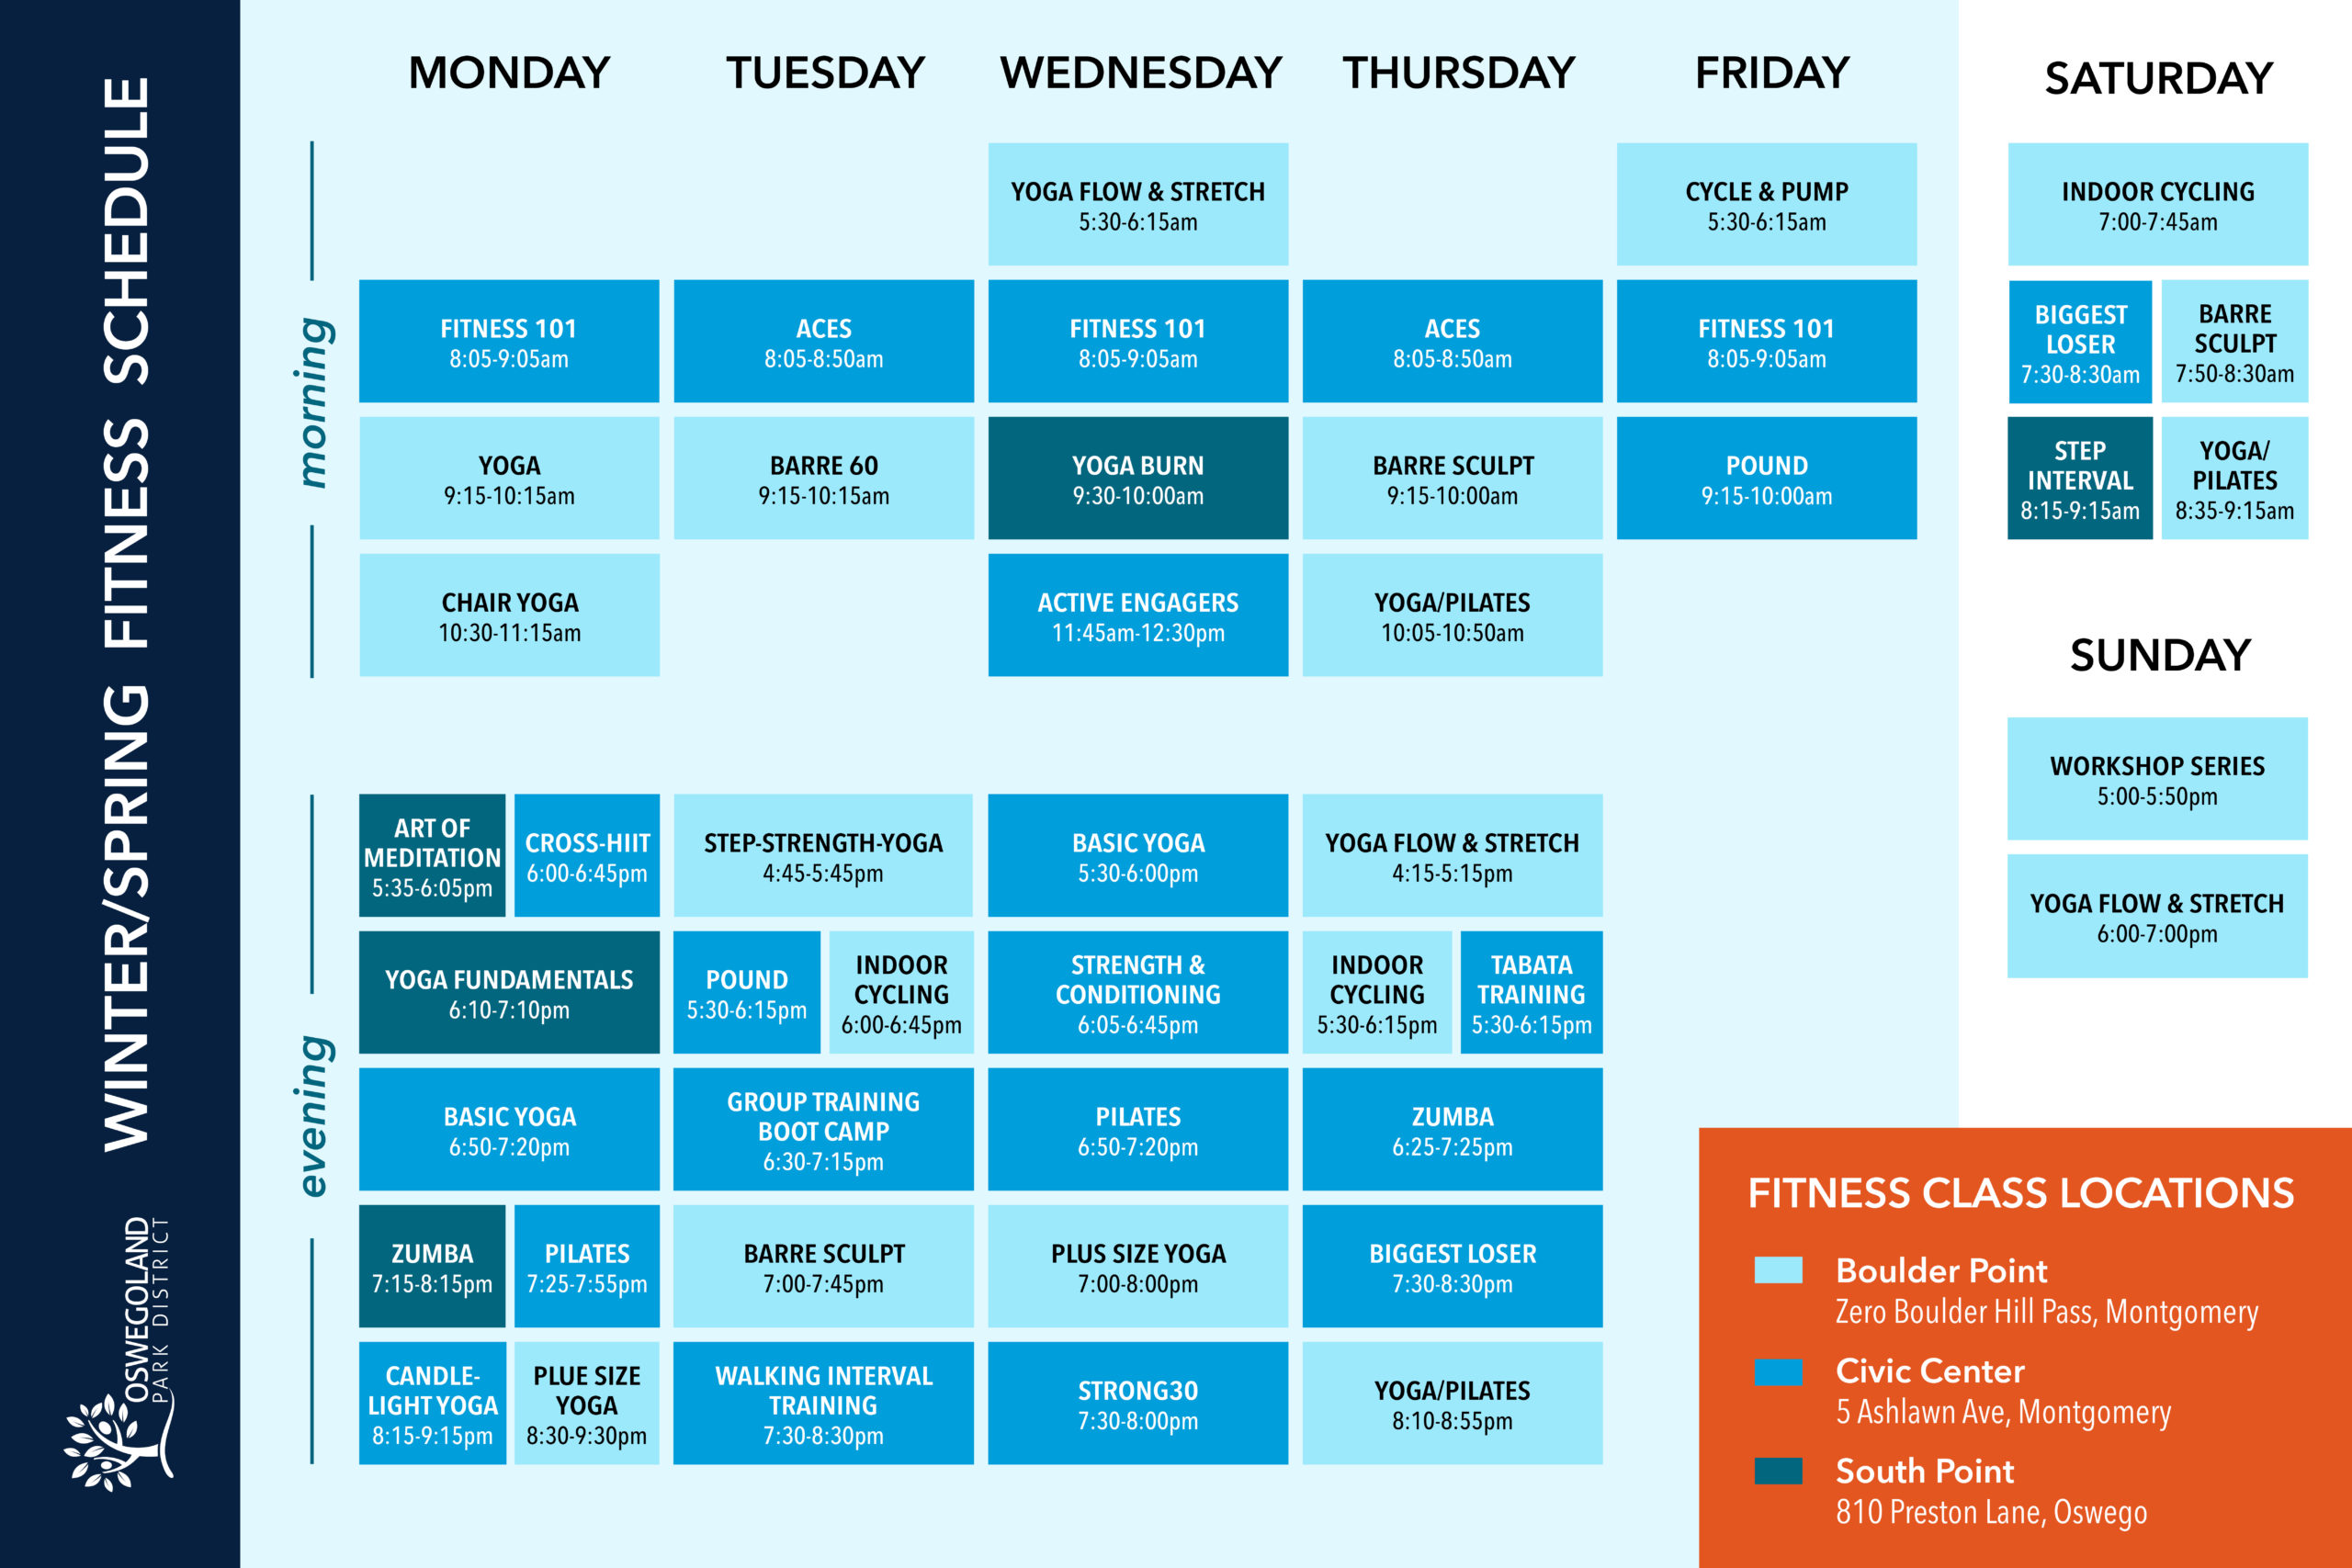 WS20 fitness chart